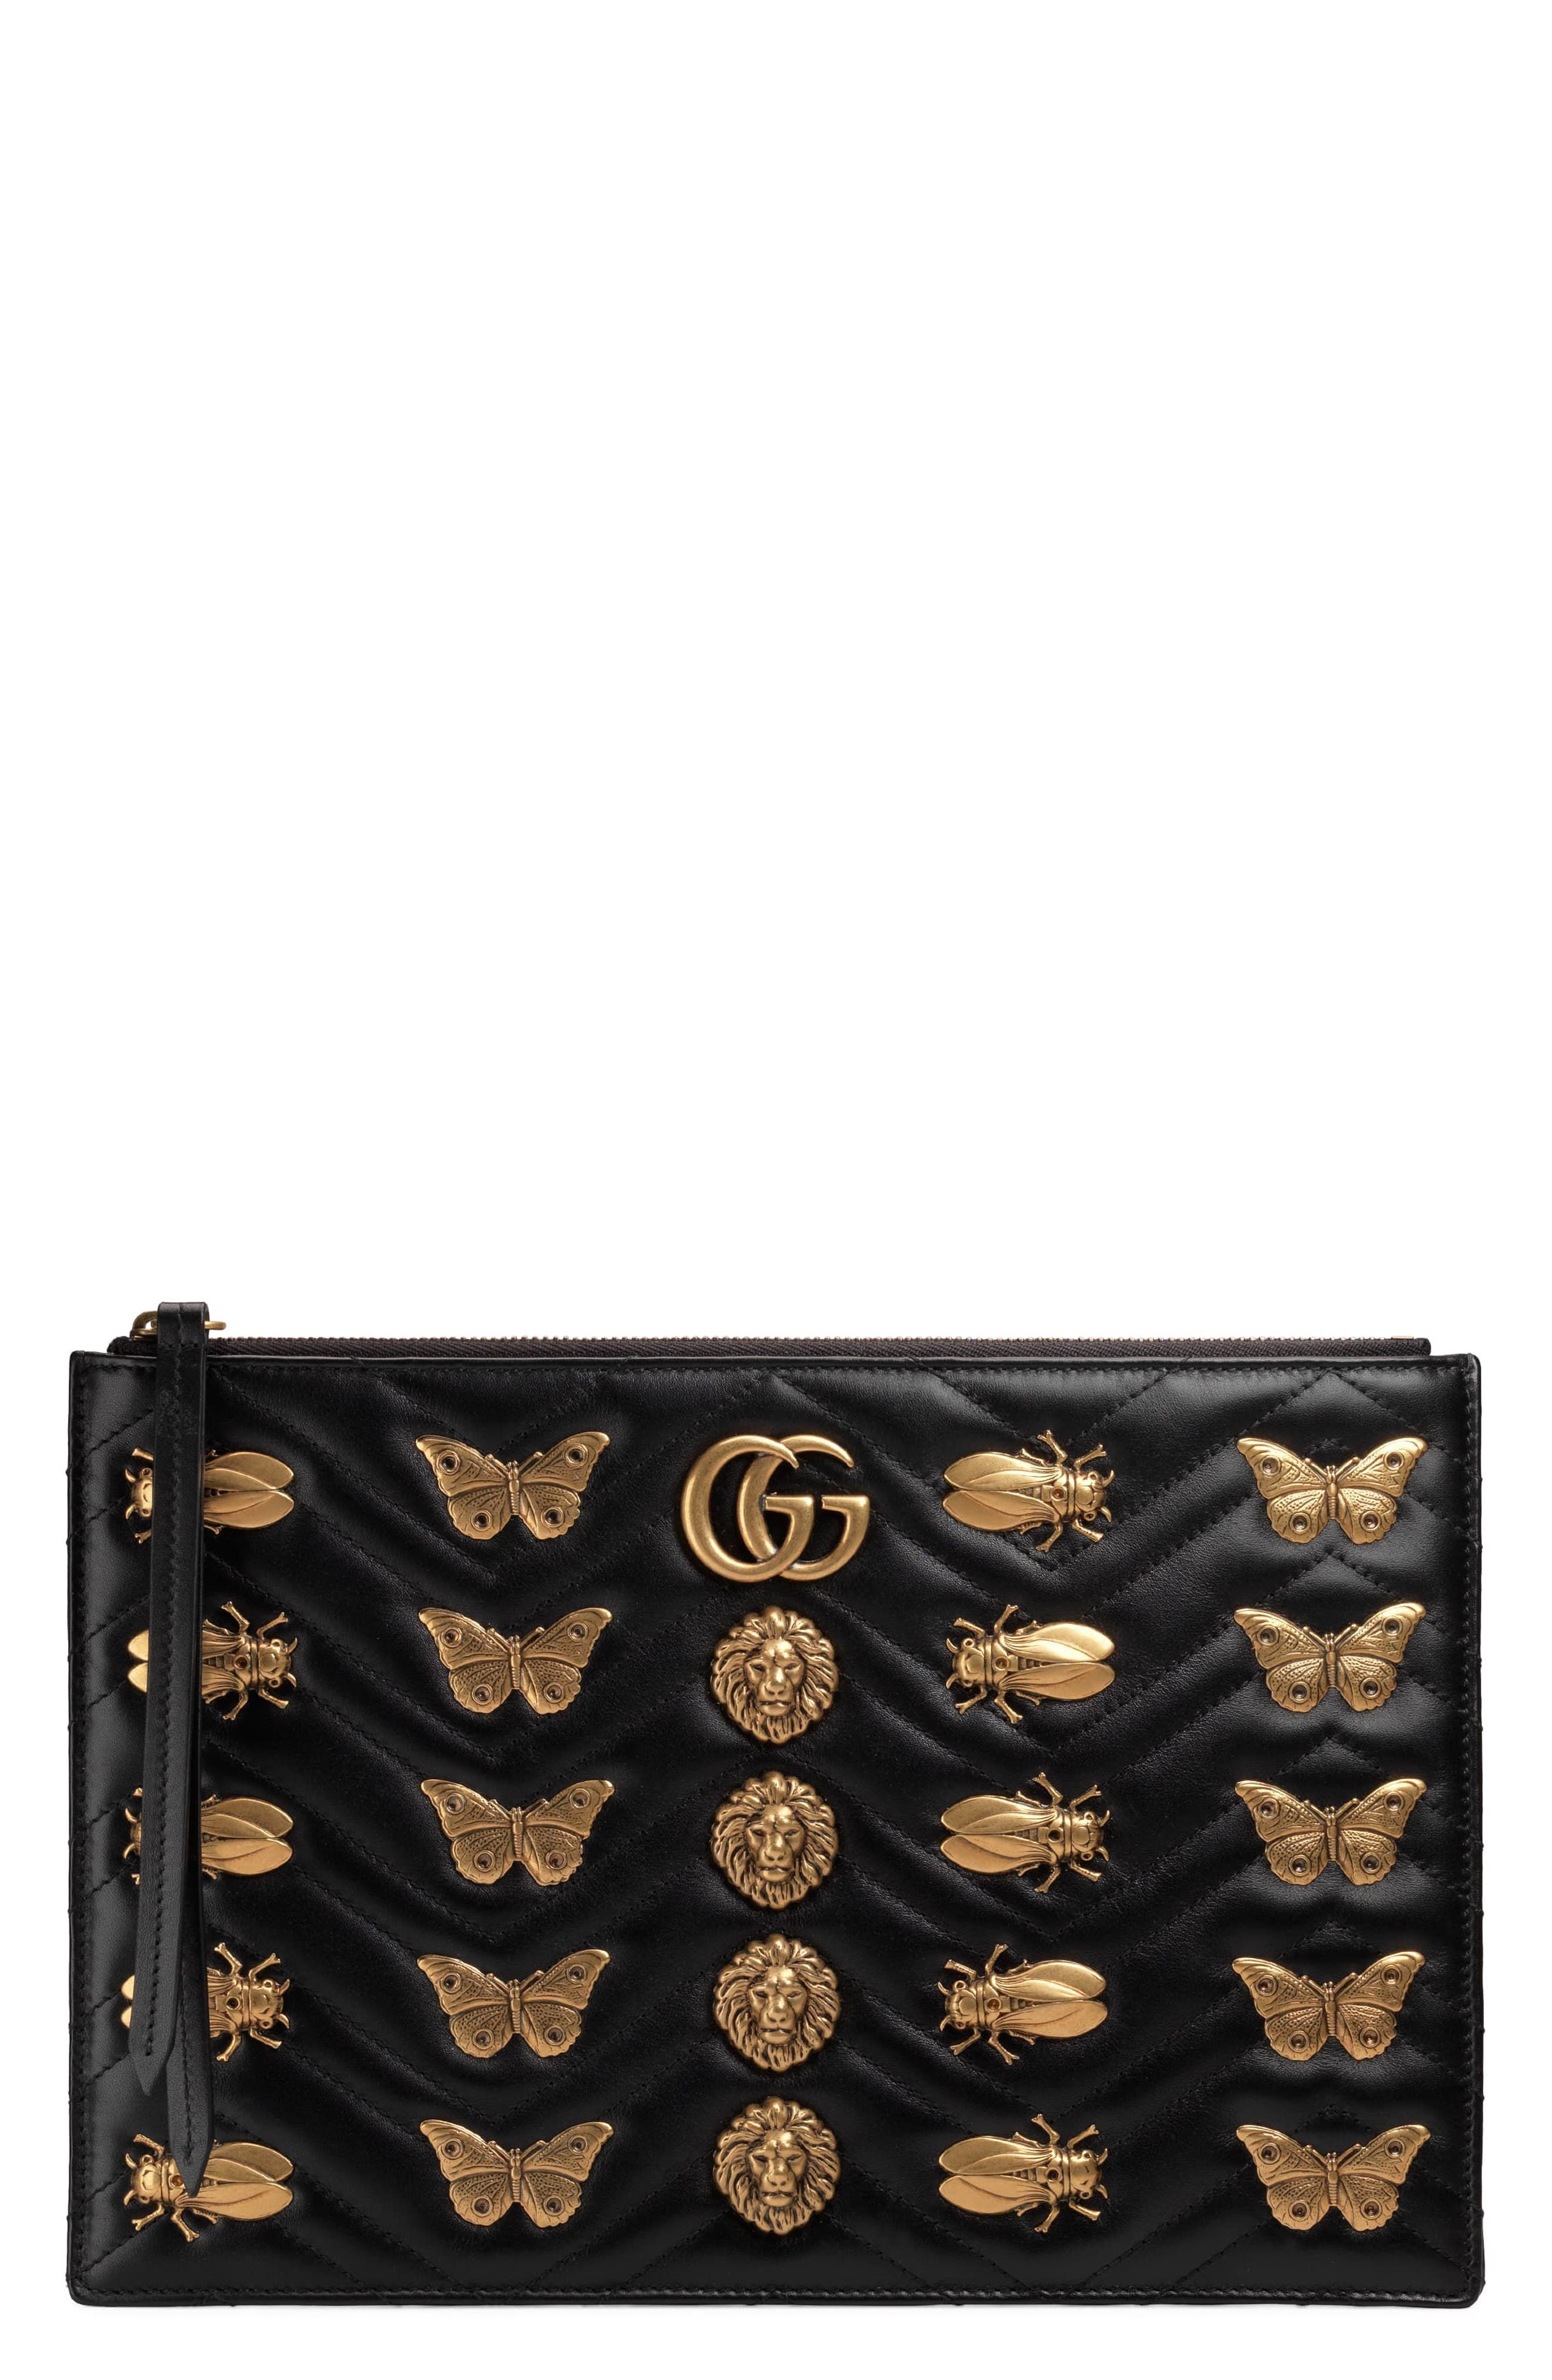 GG Marmont 2.0 Animal Stud Matelassé Leather Pouch,                         Main,                         color, Nero